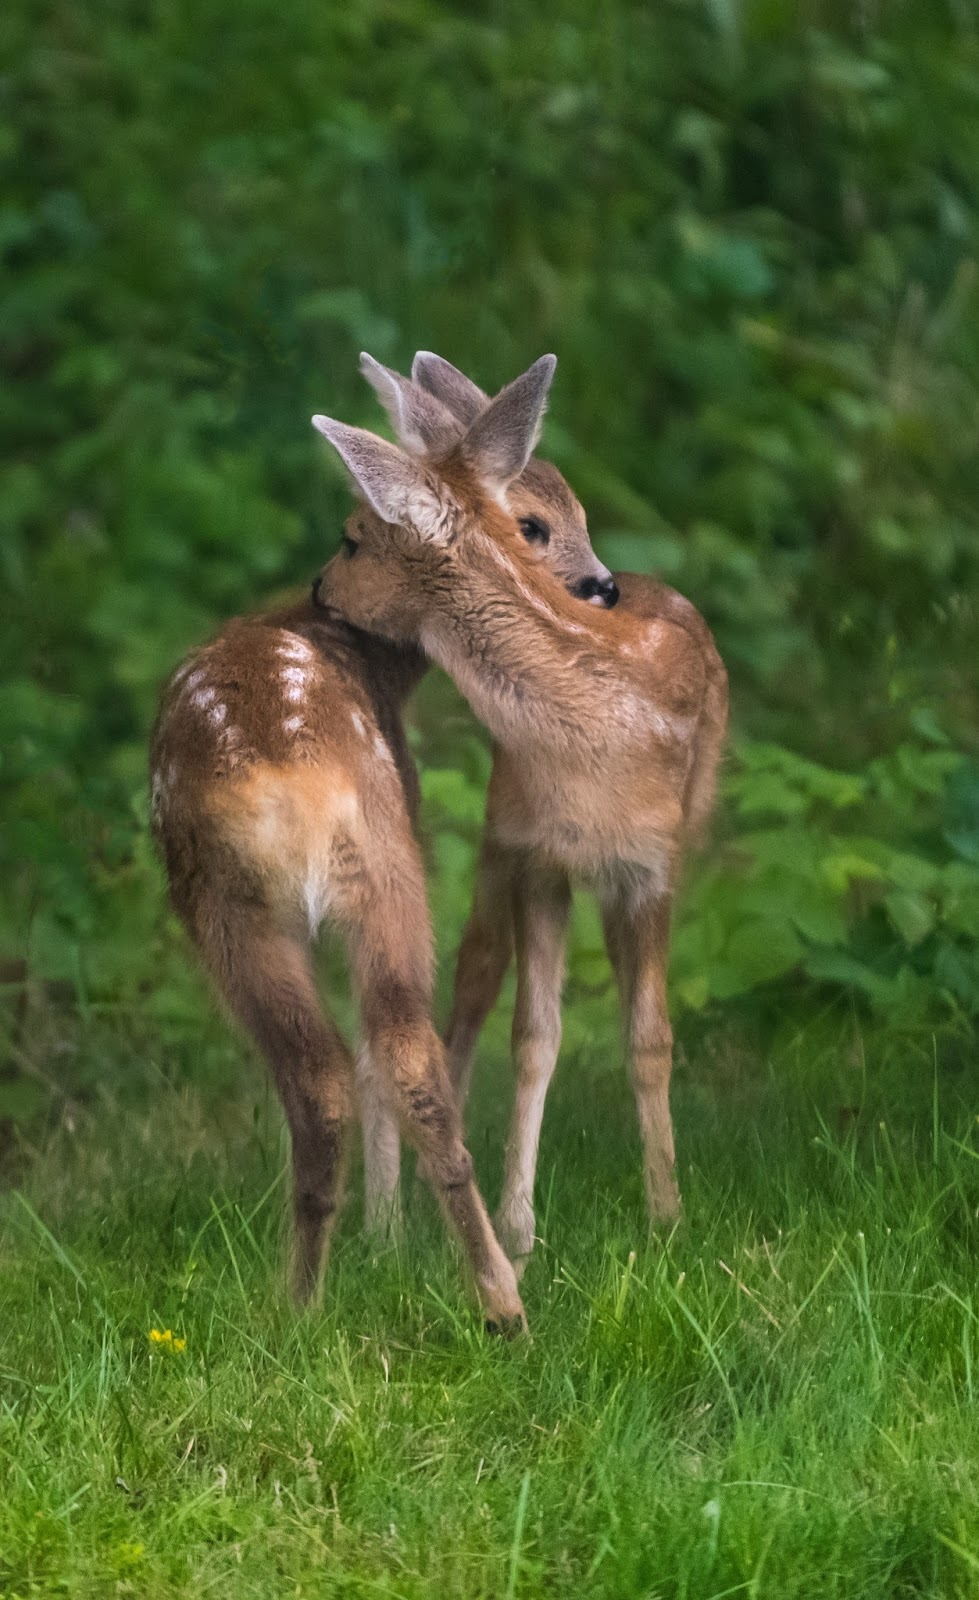 Picture of deer sibling love.